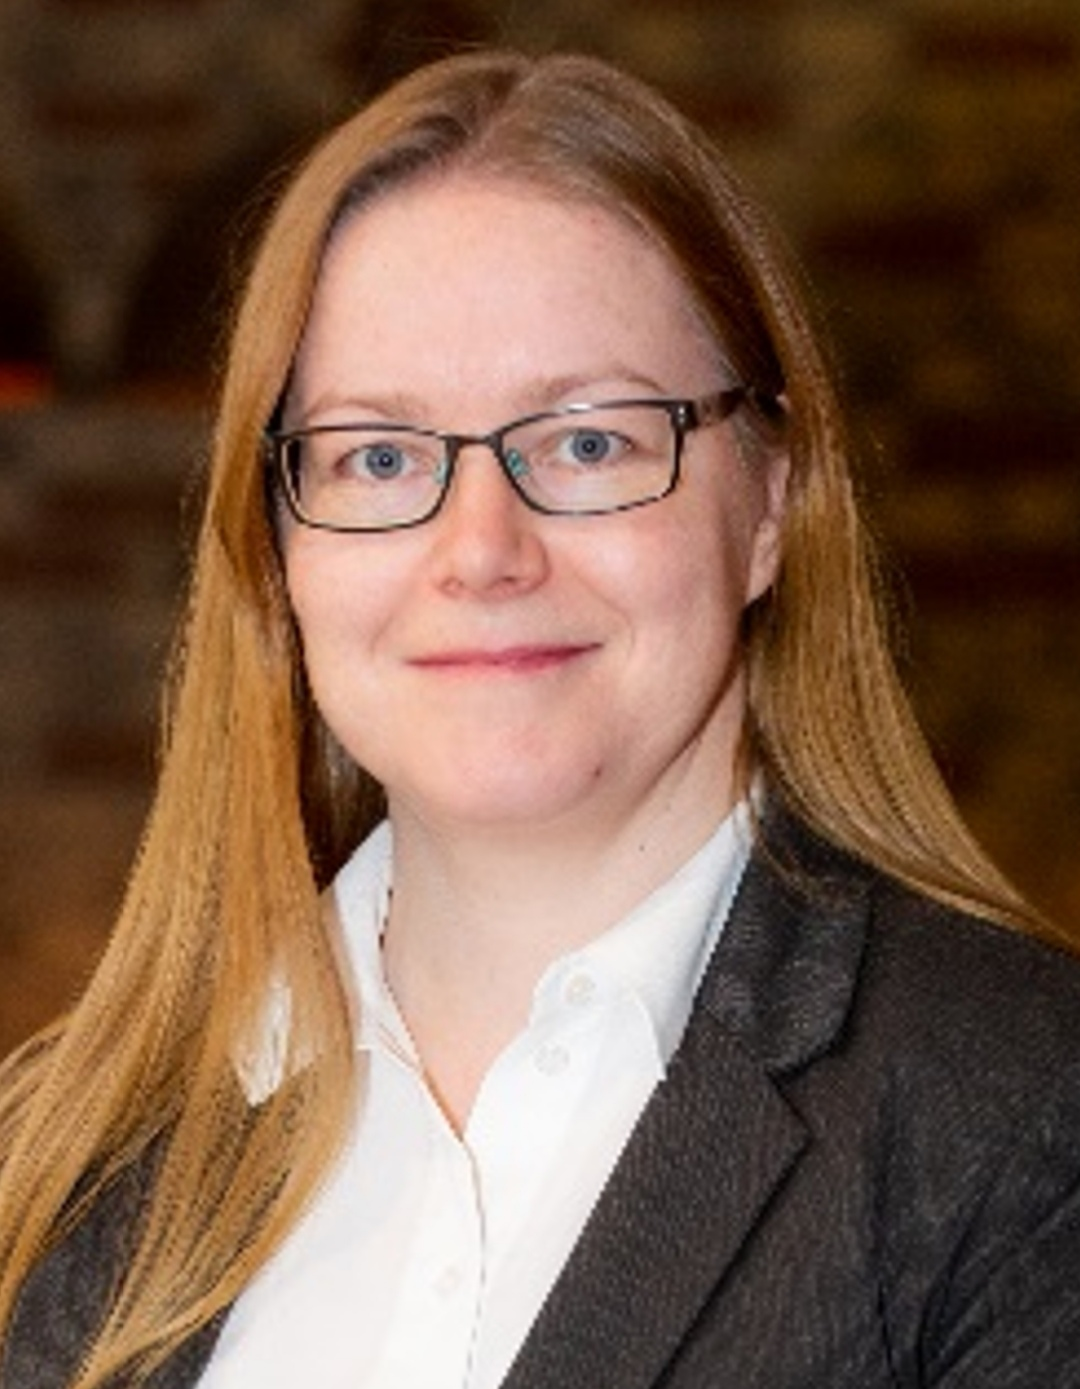 35. Using property to launder money. Barrister Anne Marie Whelan talks fraud